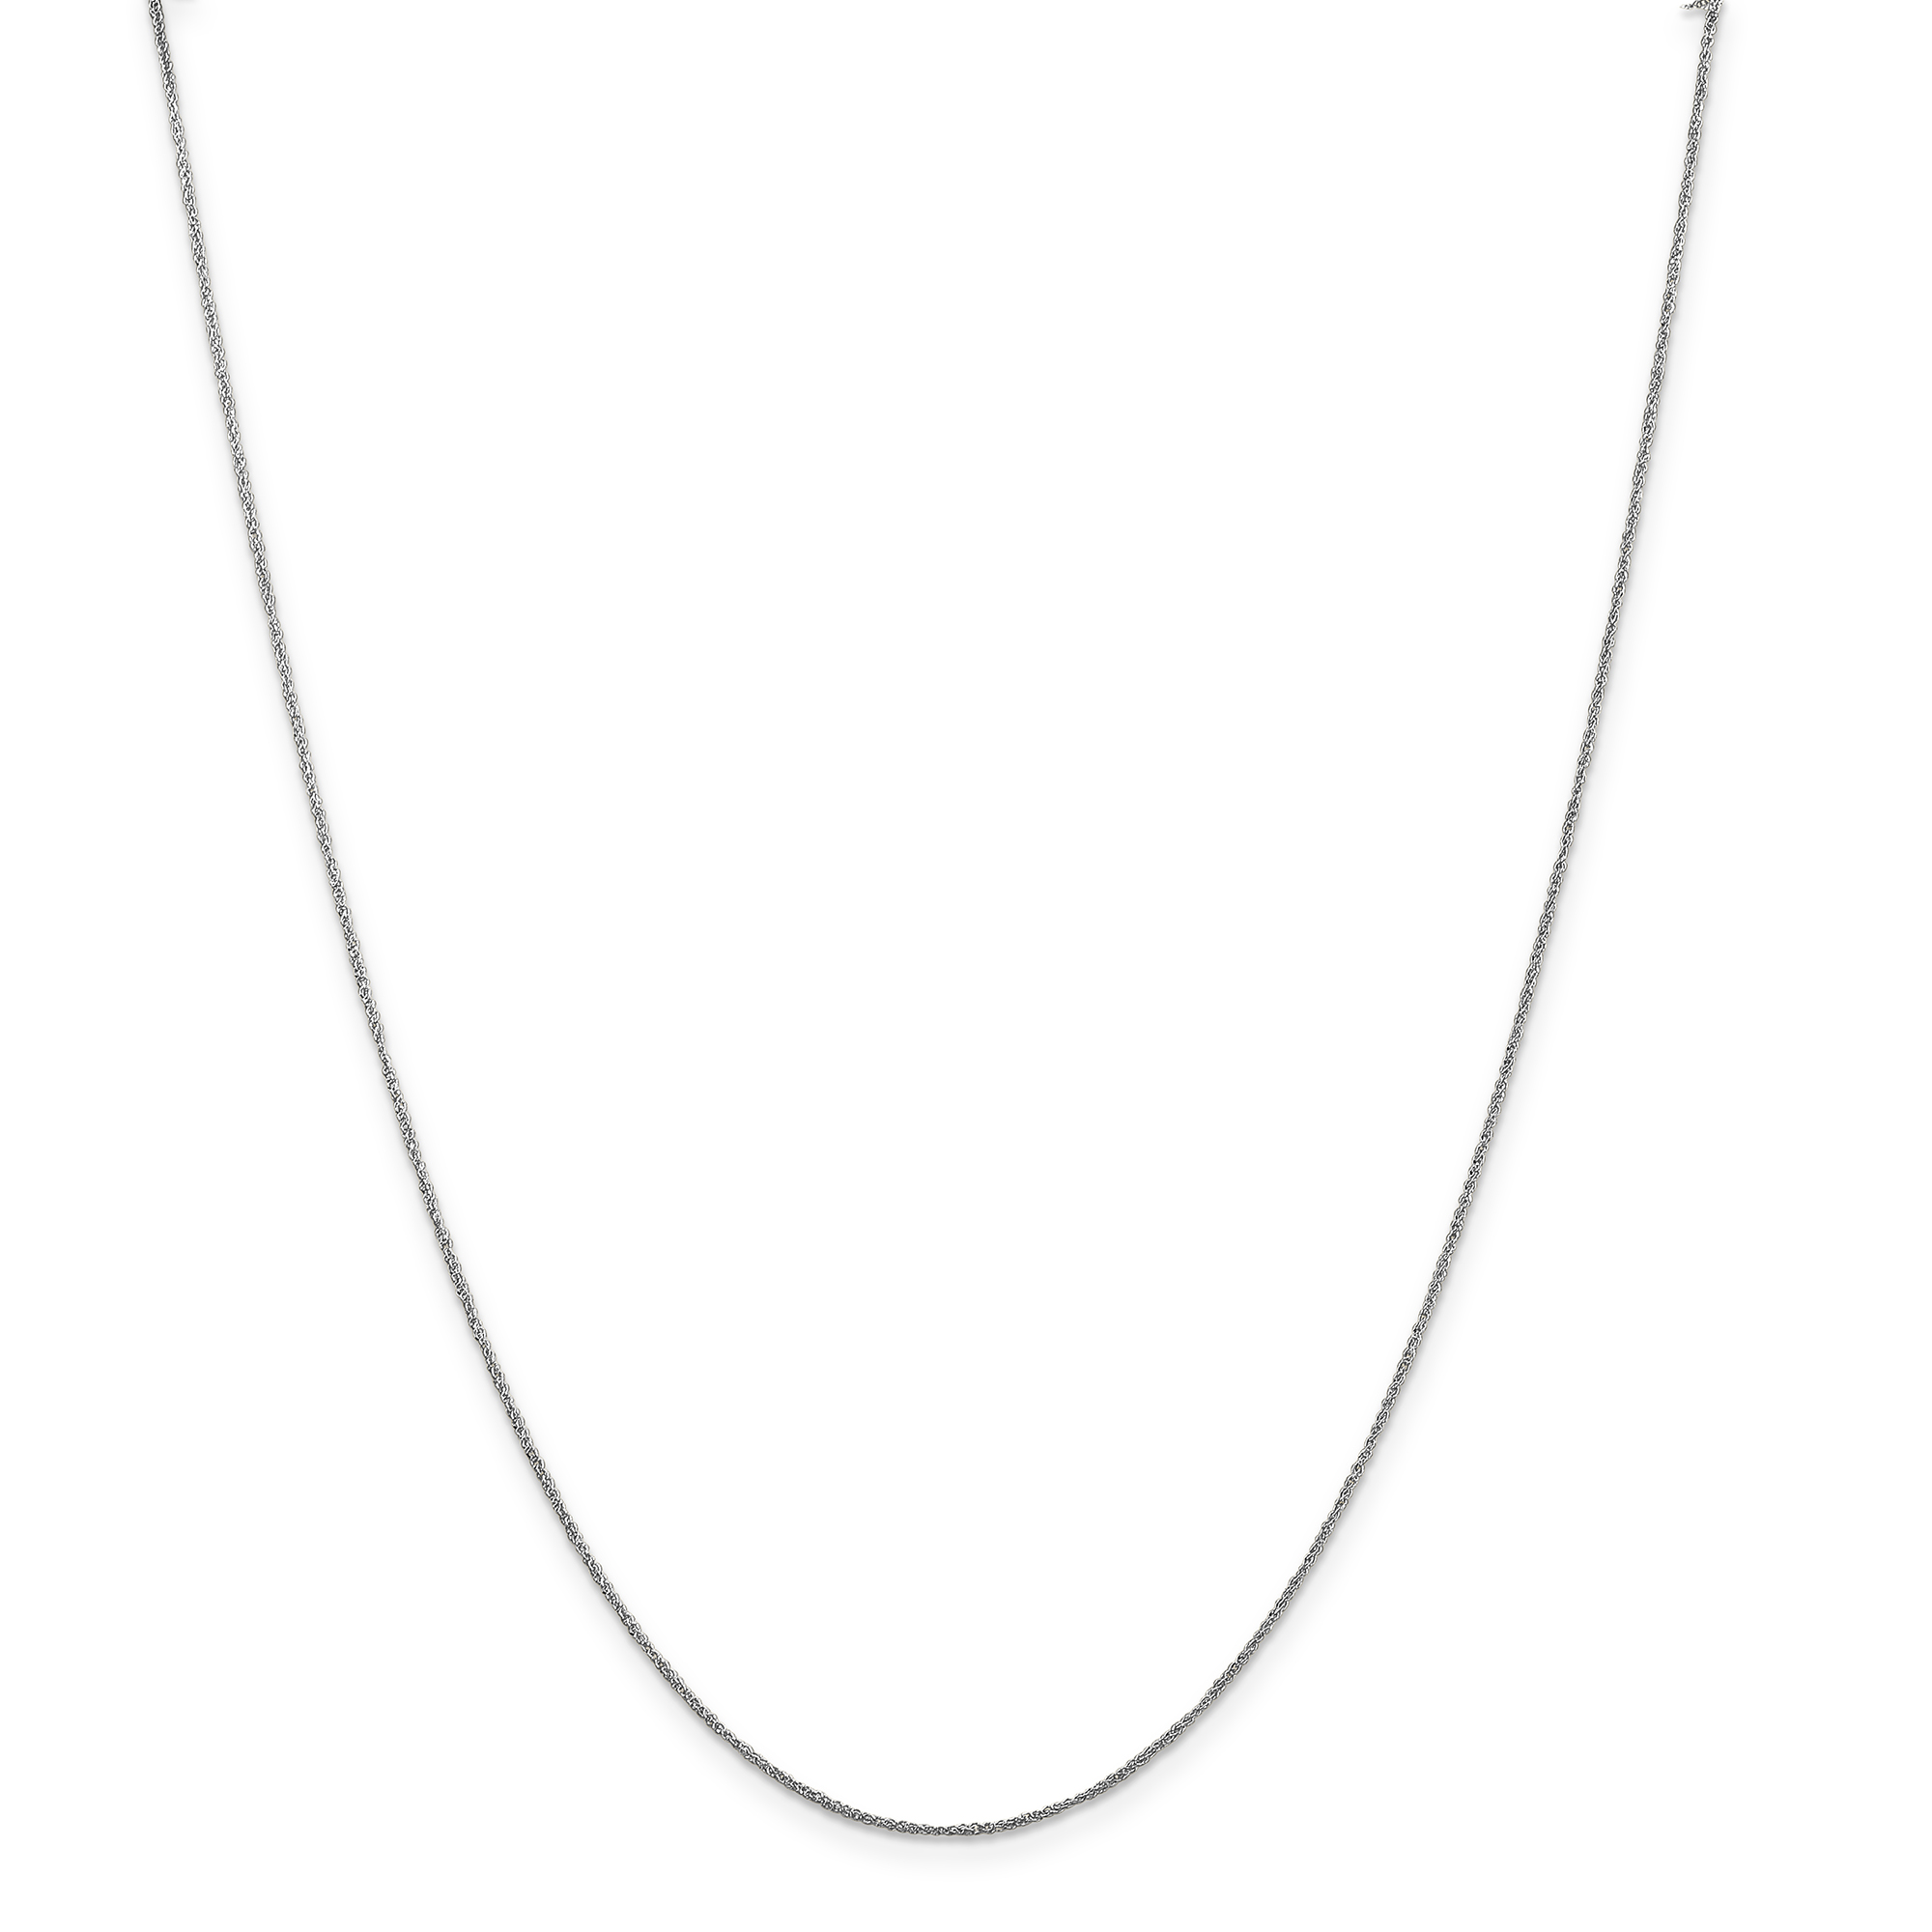 10k WG .70mm Ropa Chain. Weight: 0.62,  Length: 16